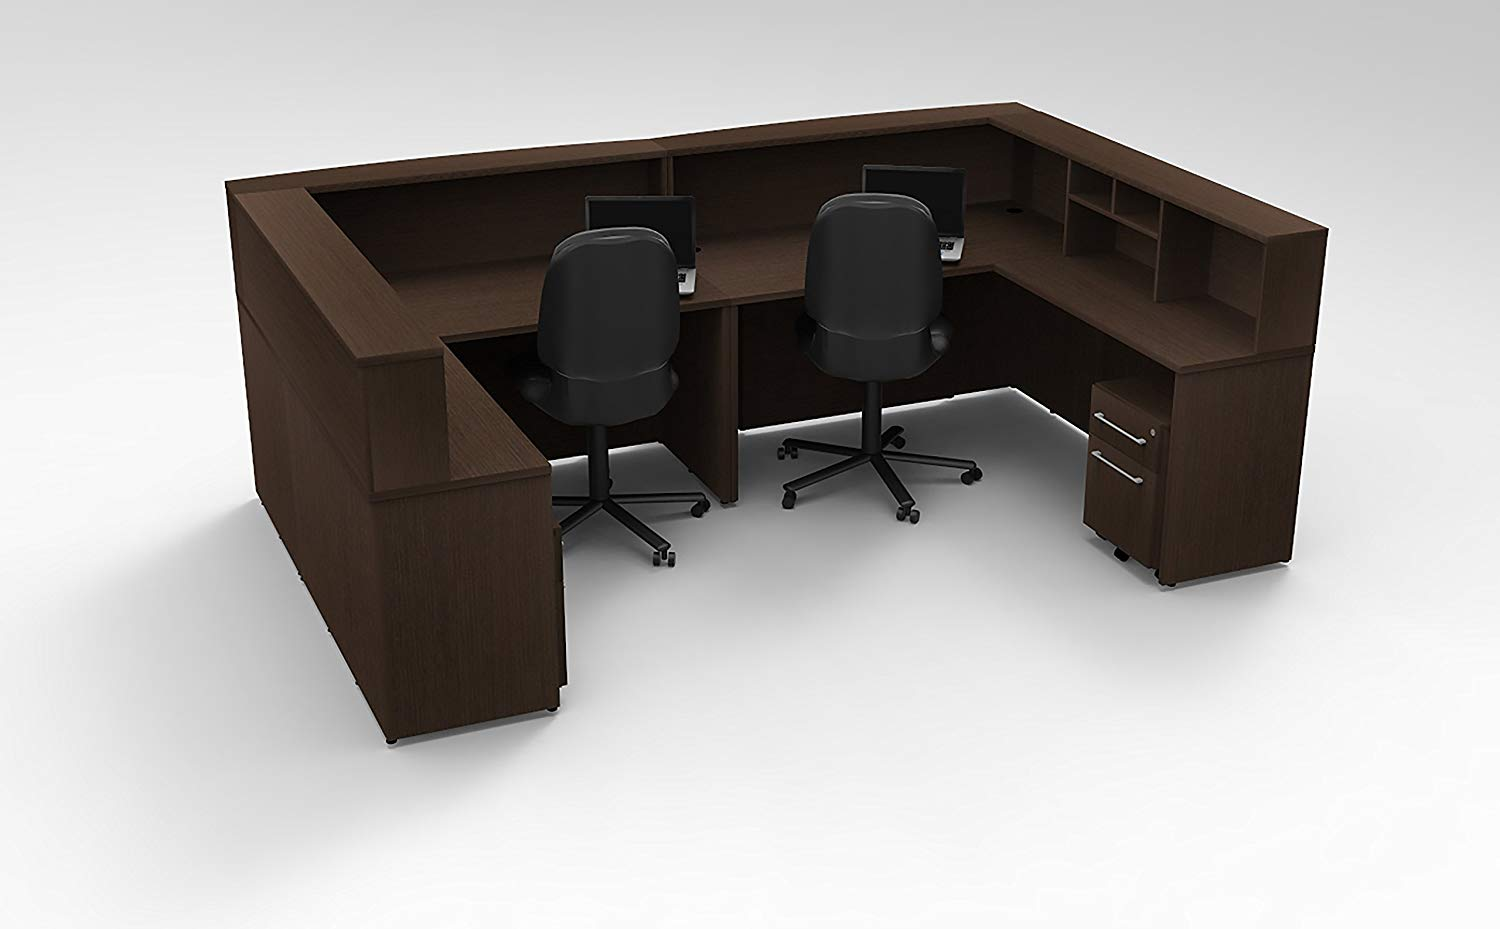 Office Reception Desk Reception Corner Collaboration Furniture Model 4313 10 Pc Group Contemporary Espresso color. Update Your Spaces with Commercial Grade Reception Collaboration Furniture.